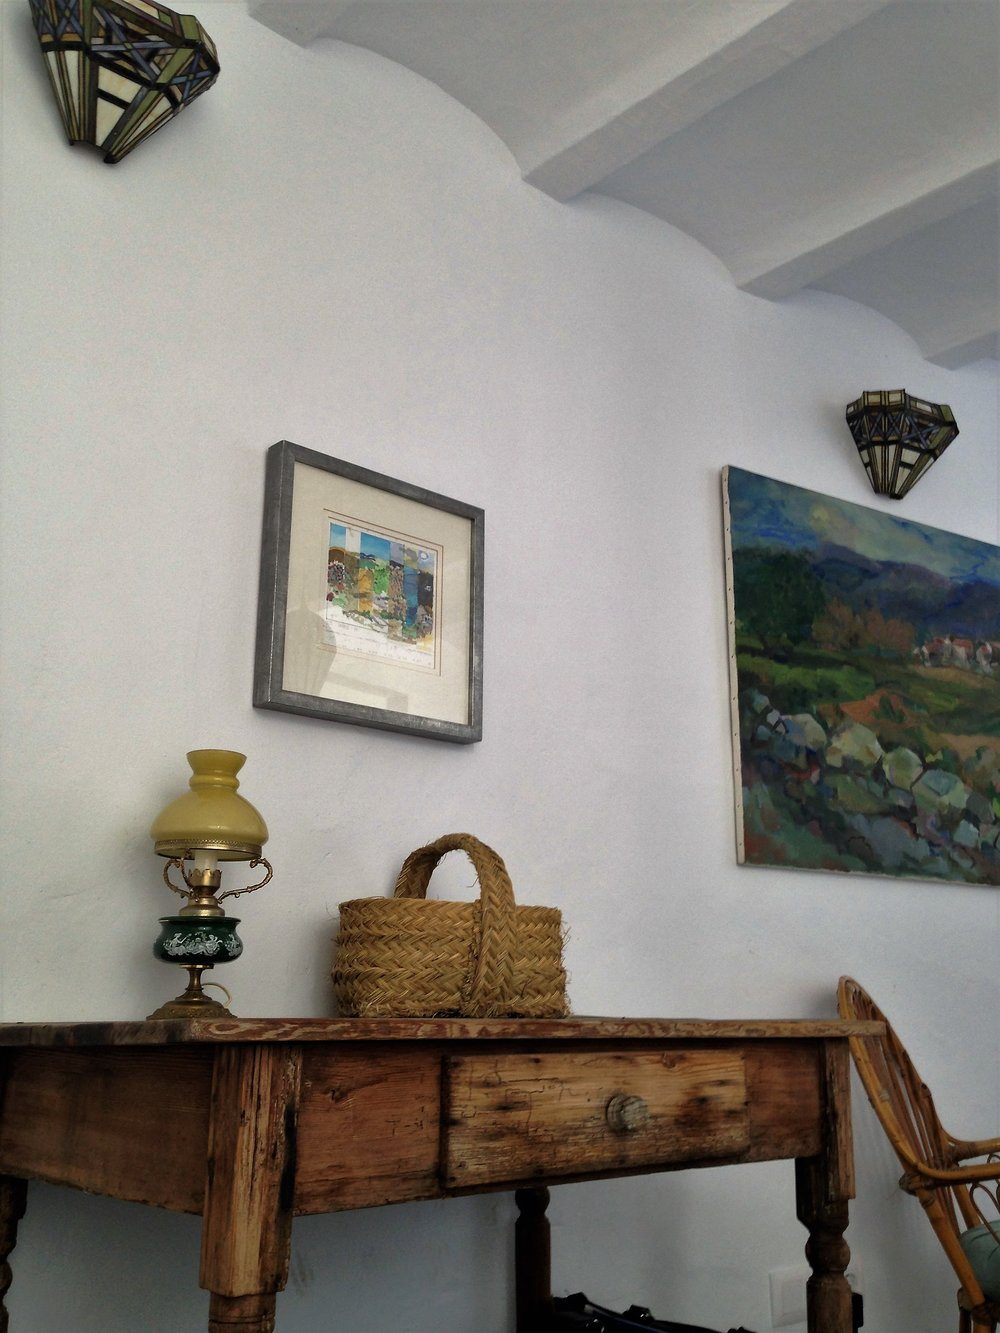 We had a charming apartment in the beautiful white village of Fragiliana, Spain.